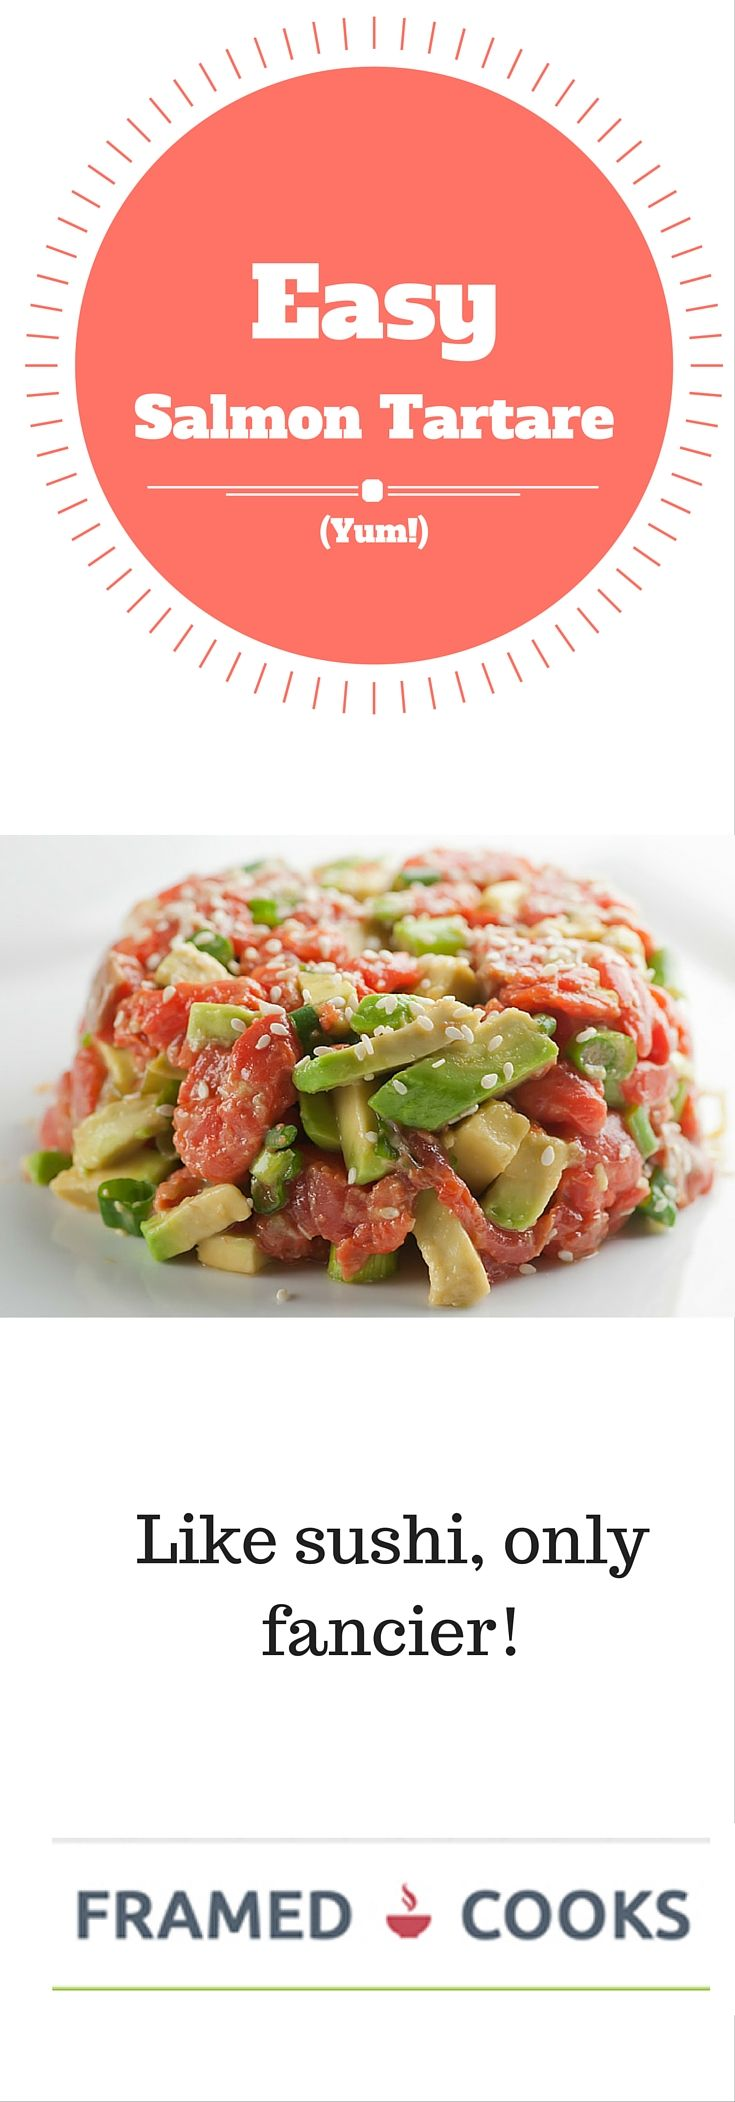 This easy recipe for salmon tartare with avocado and sesame seeds is like your favorite sushi, only fancier and shareable!